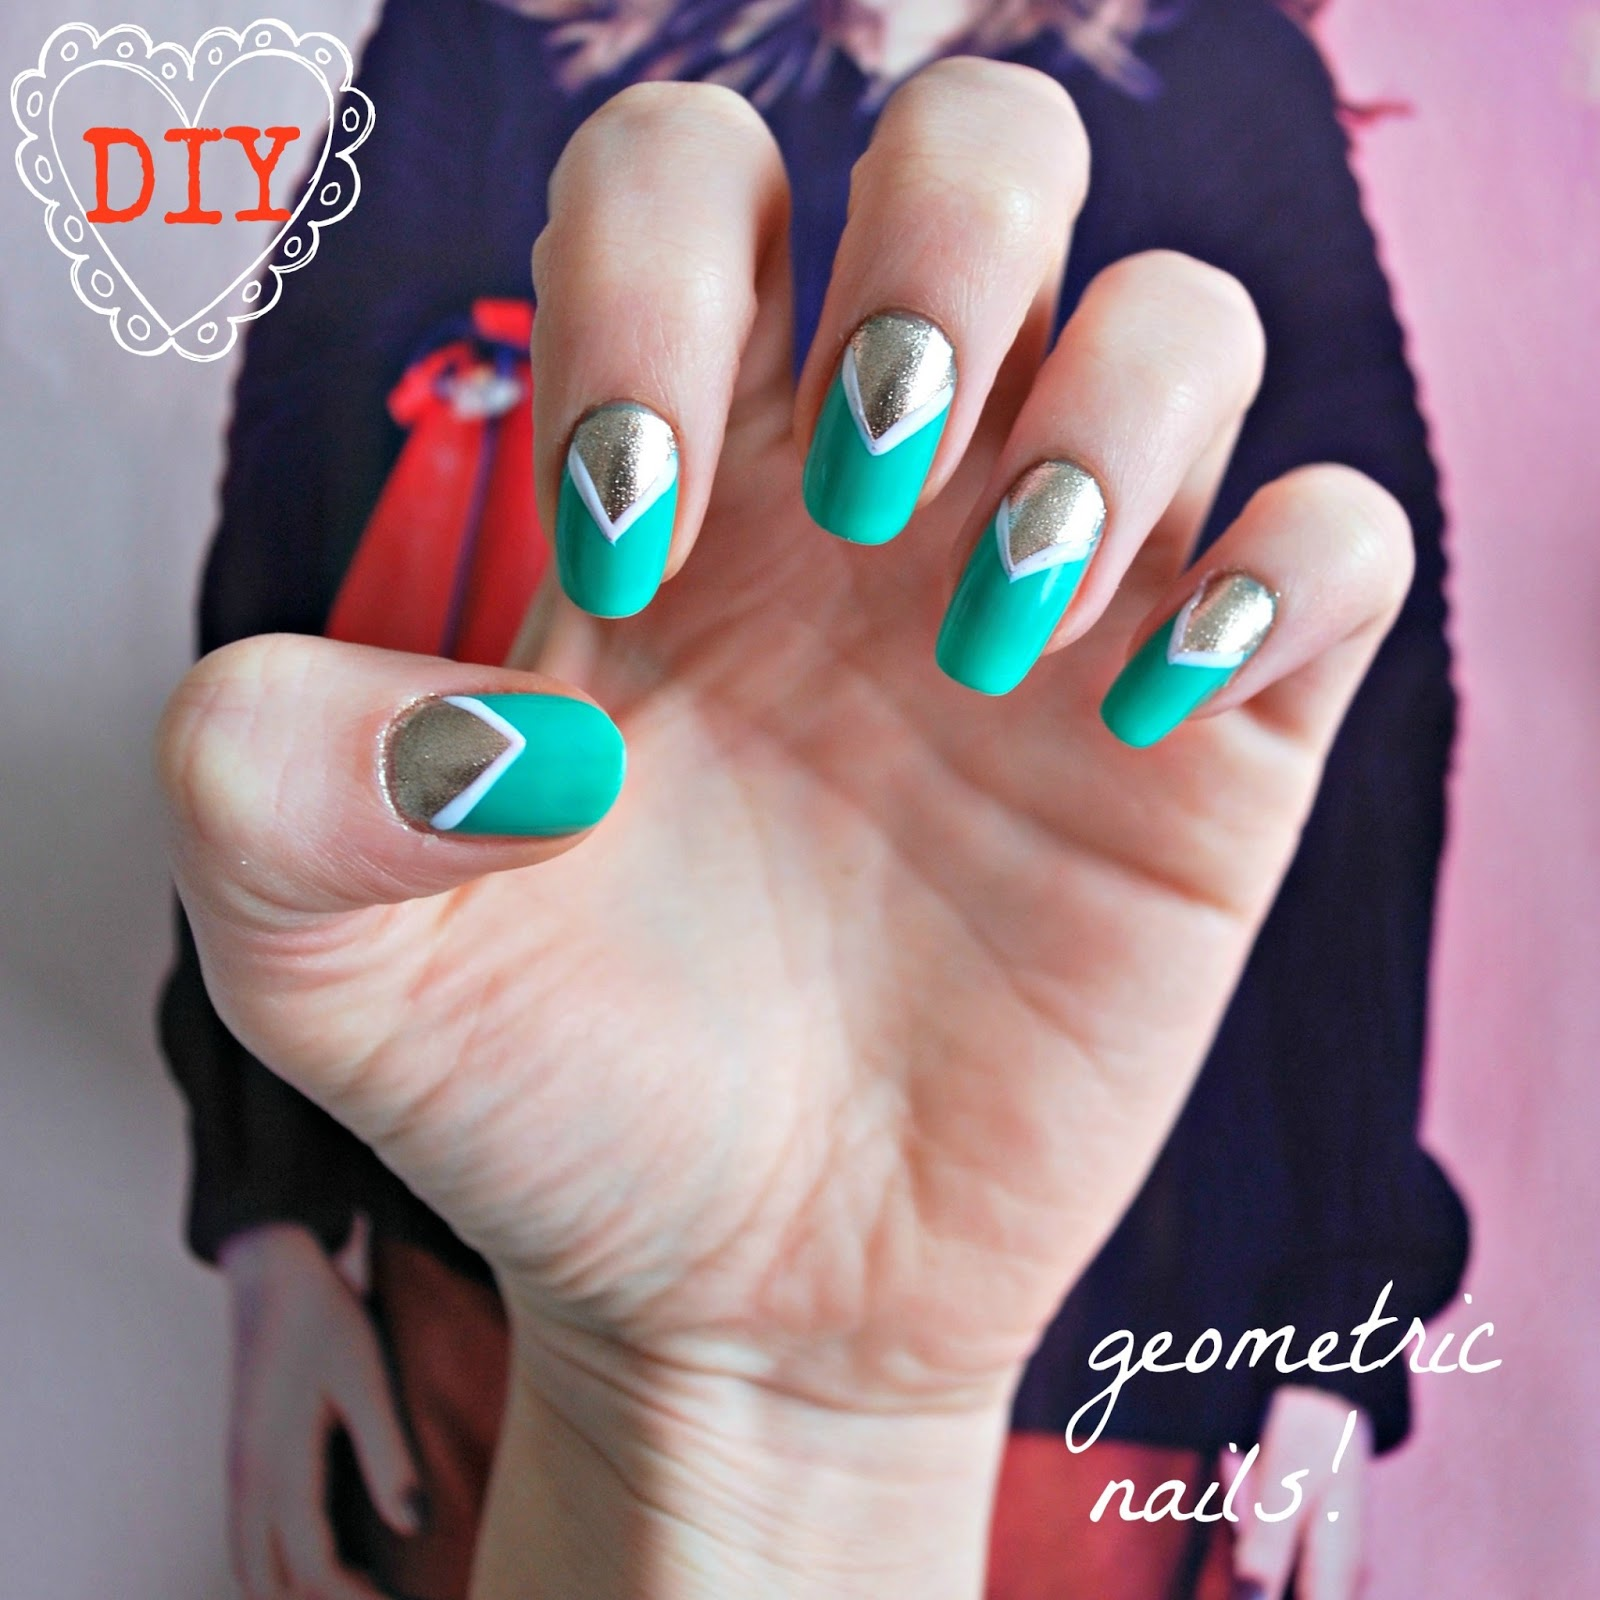 Diy easy geometric nail art burkatron diy easy geometric nail art prinsesfo Images